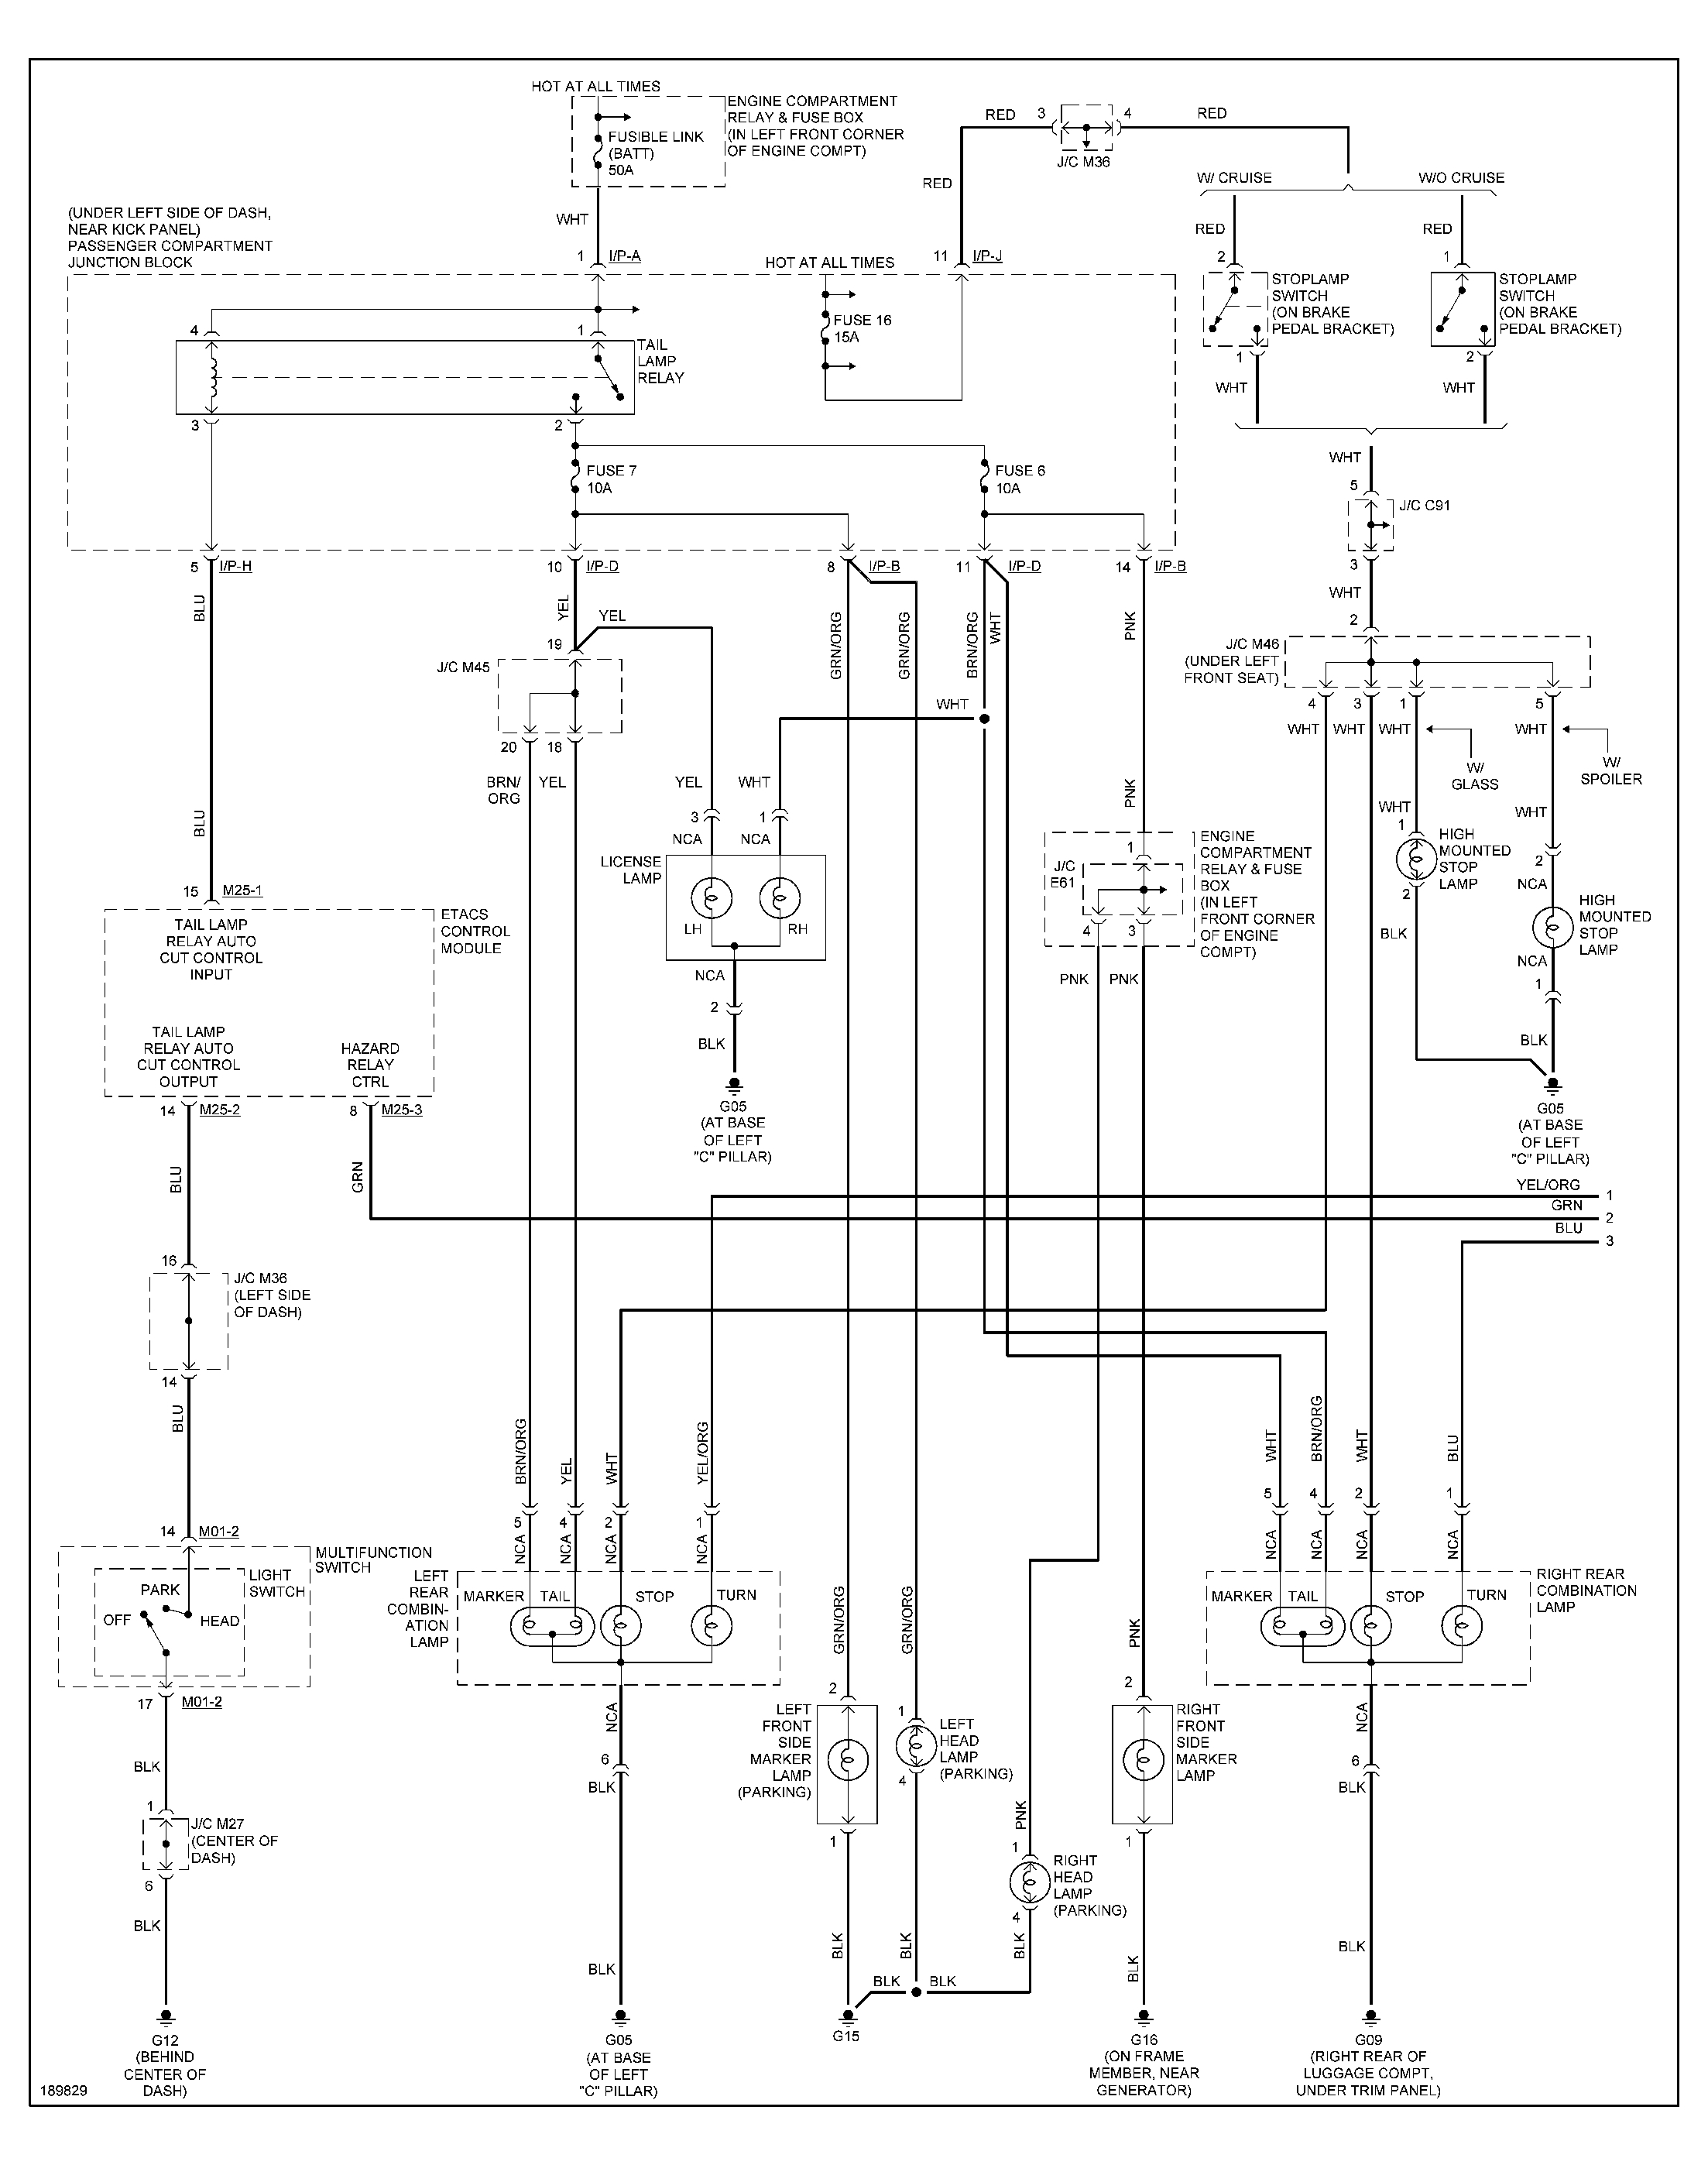 2009 Hyundai Sonata Headlight Wiring Diagram - Wiring Diagram